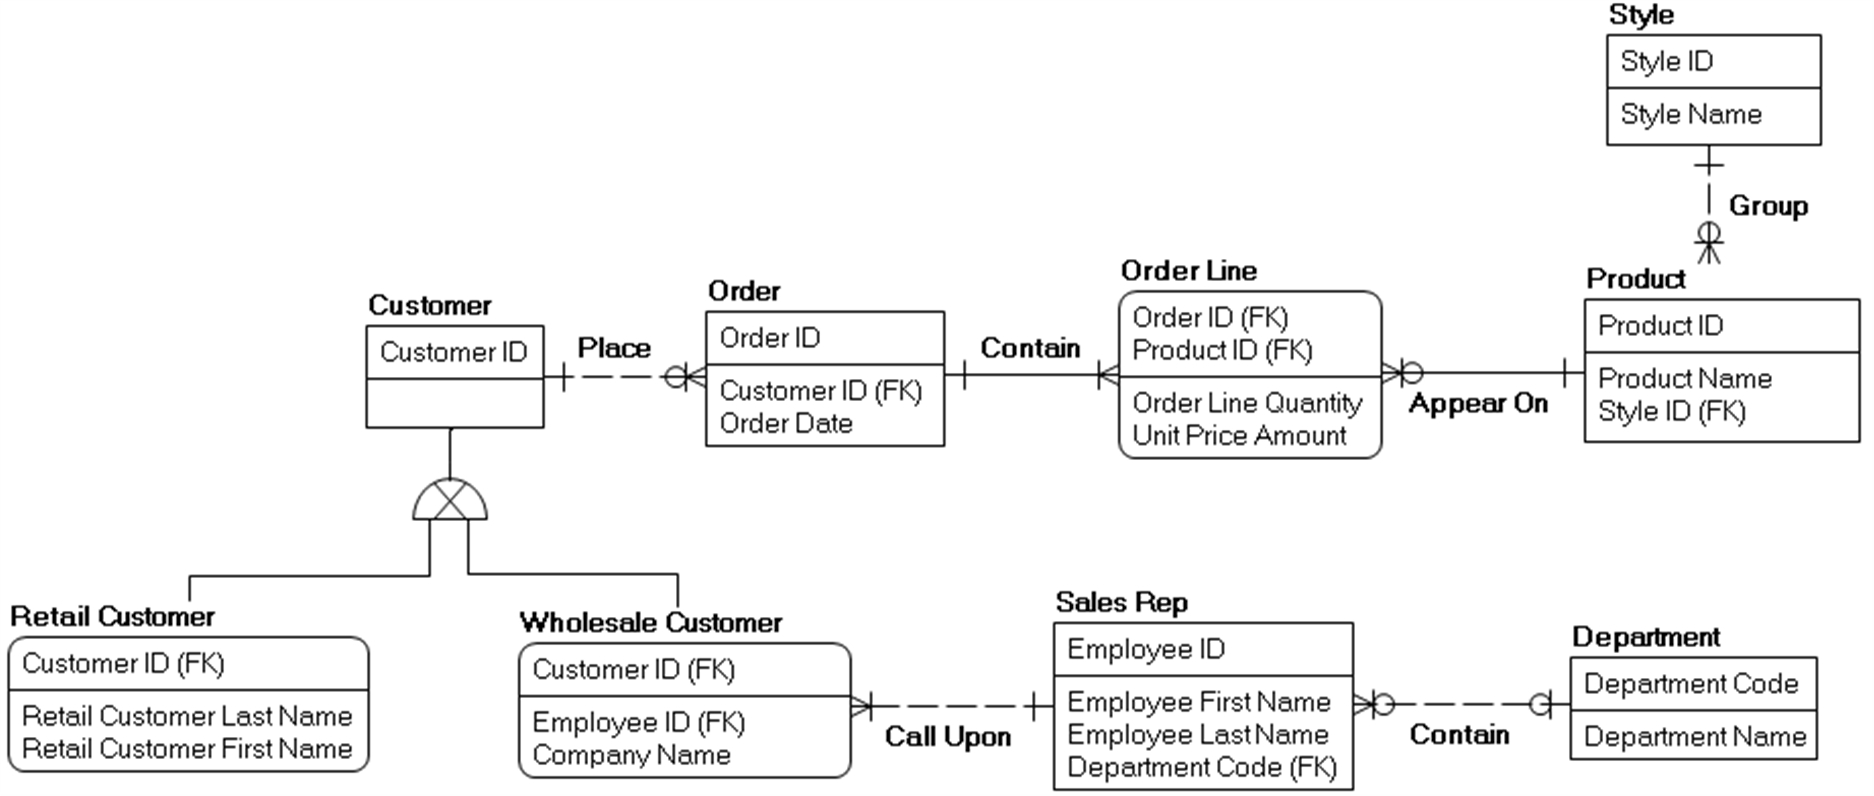 Creating A Physical Data Model - Data Modeling Made Simple pertaining to Erwin Model